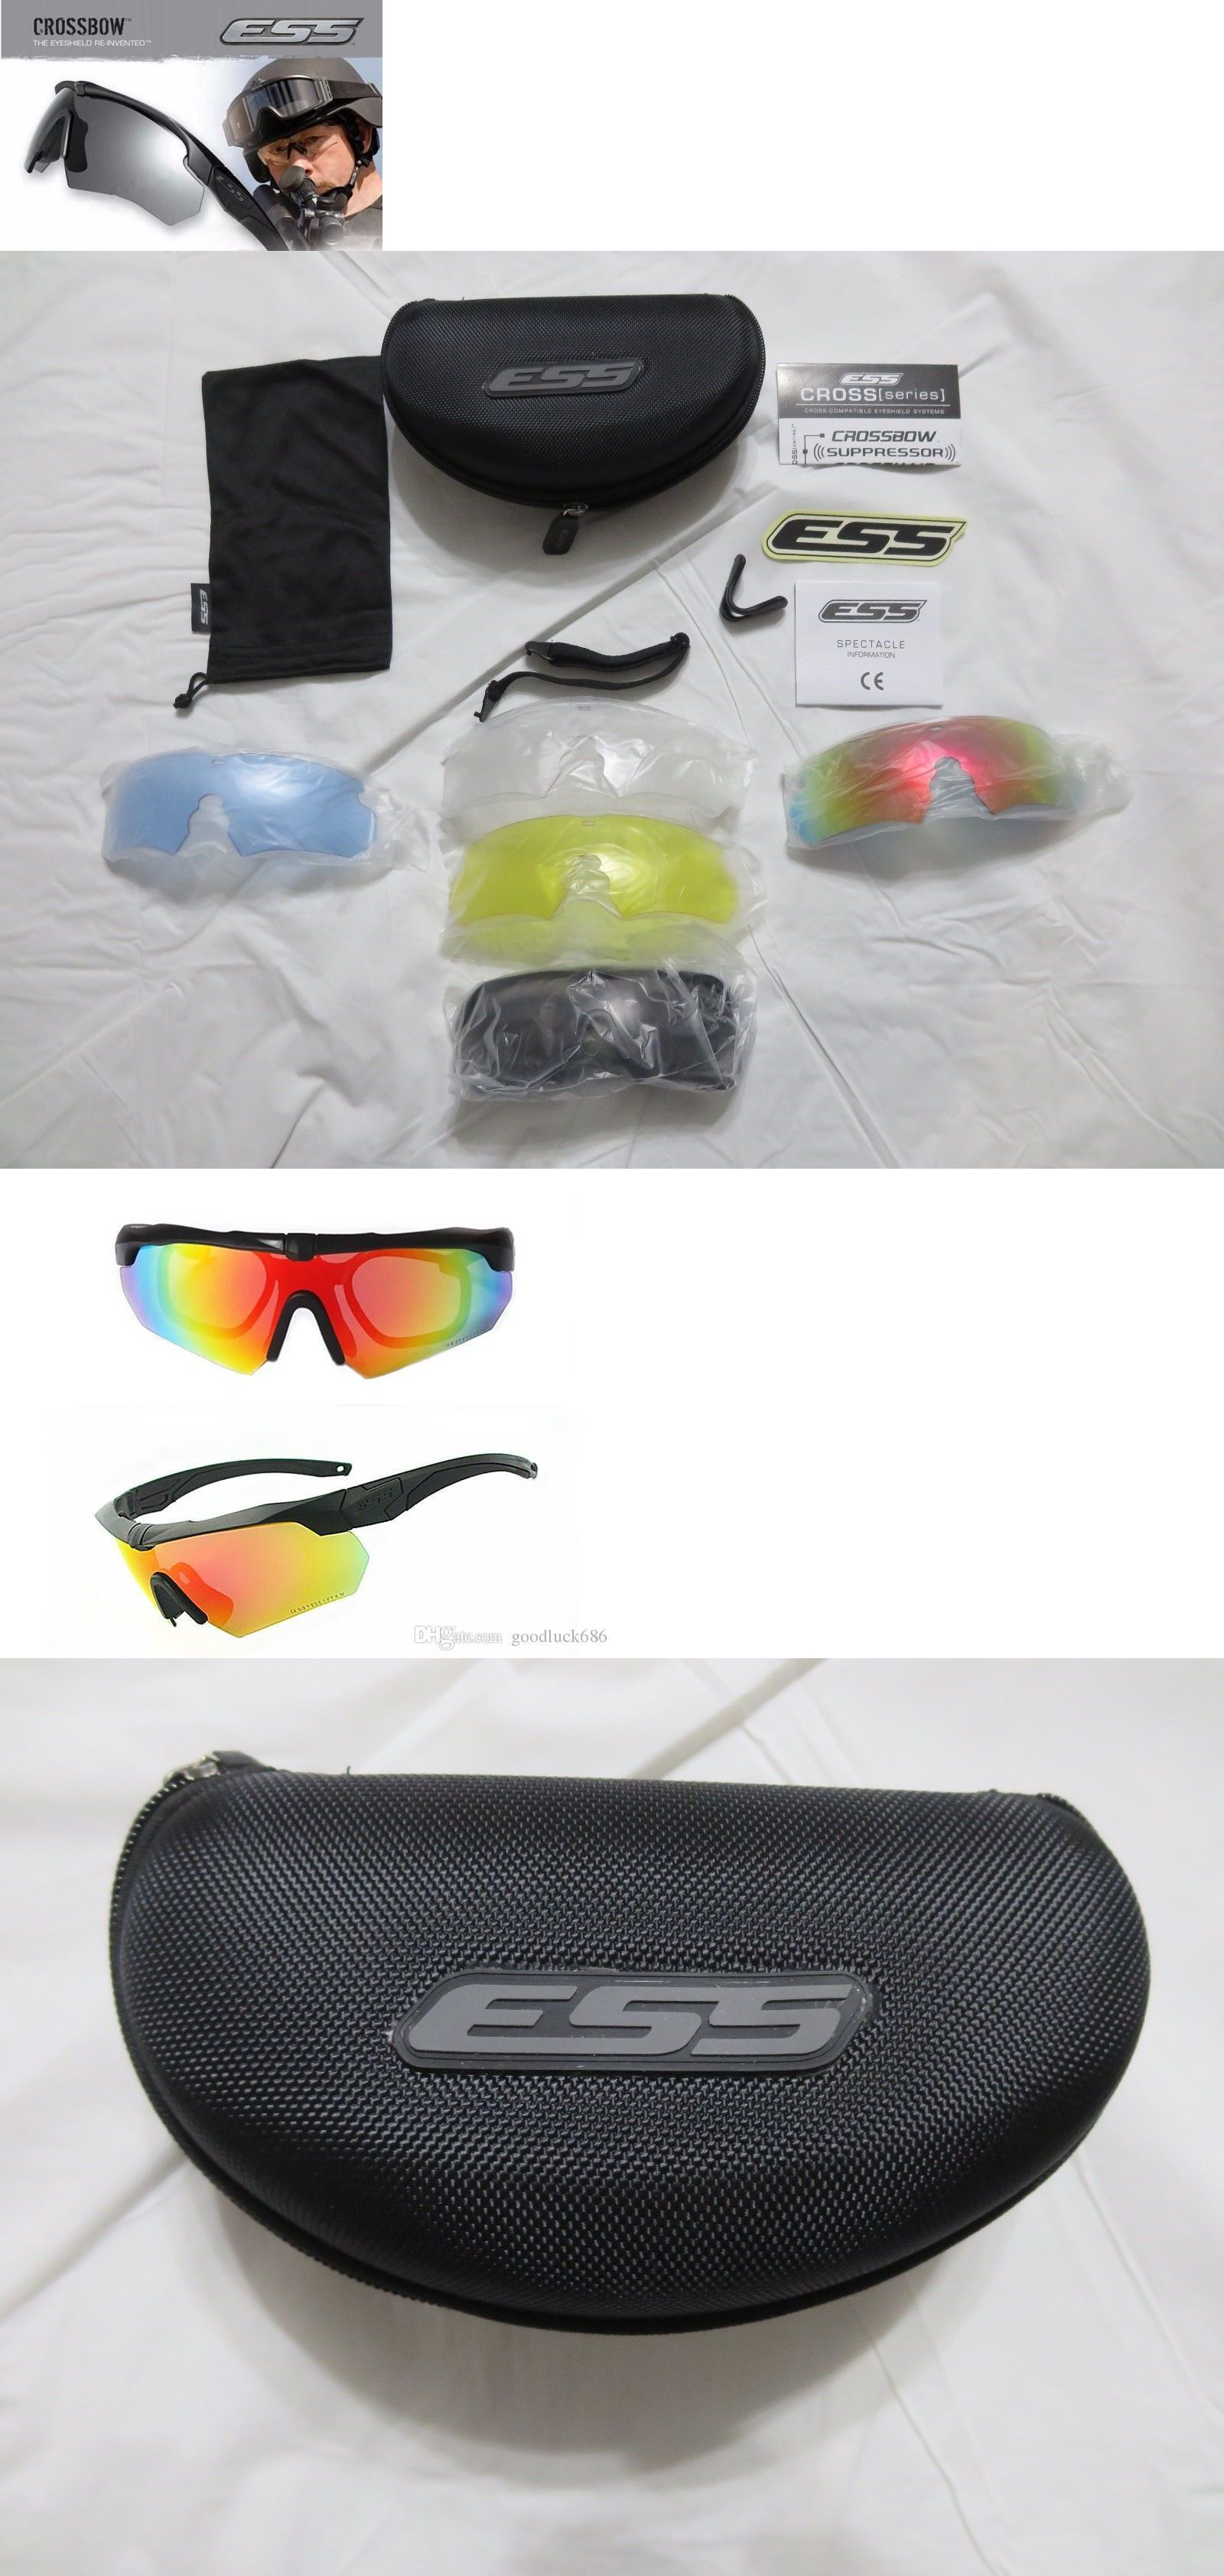 47fe3bb7a73 Shooting and Safety Glasses 151549  Ess Crossbow Ls3 Goggles 5 Lens  Polarized Sunglasses